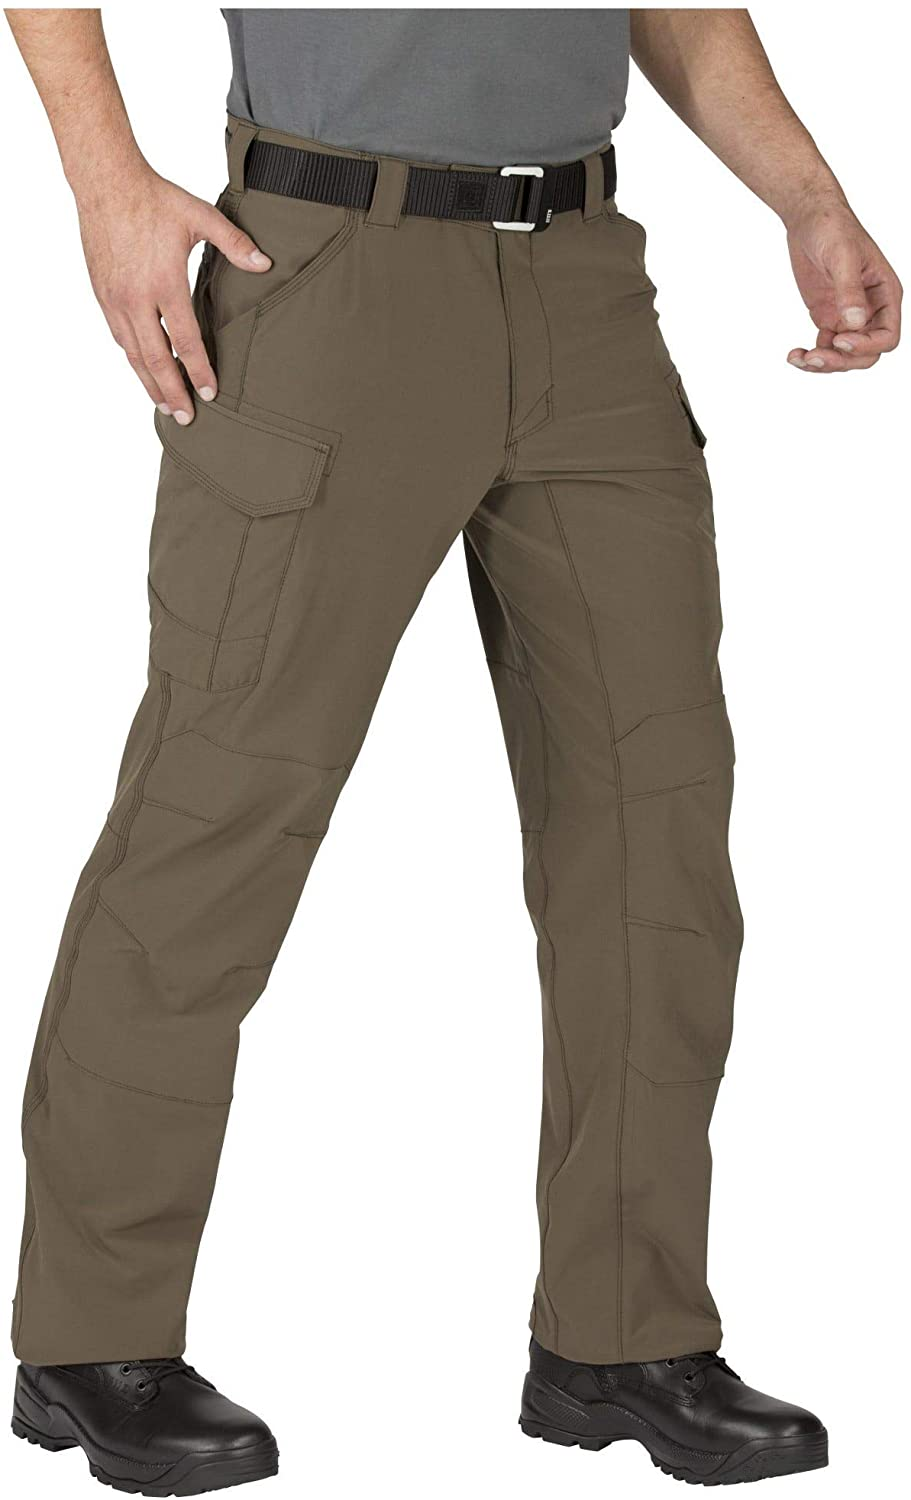 5.11 Mens Traverse 2.0 Lightweight Water-Repellent Tactical Stretch Pant, Tundra, 28W x 34L